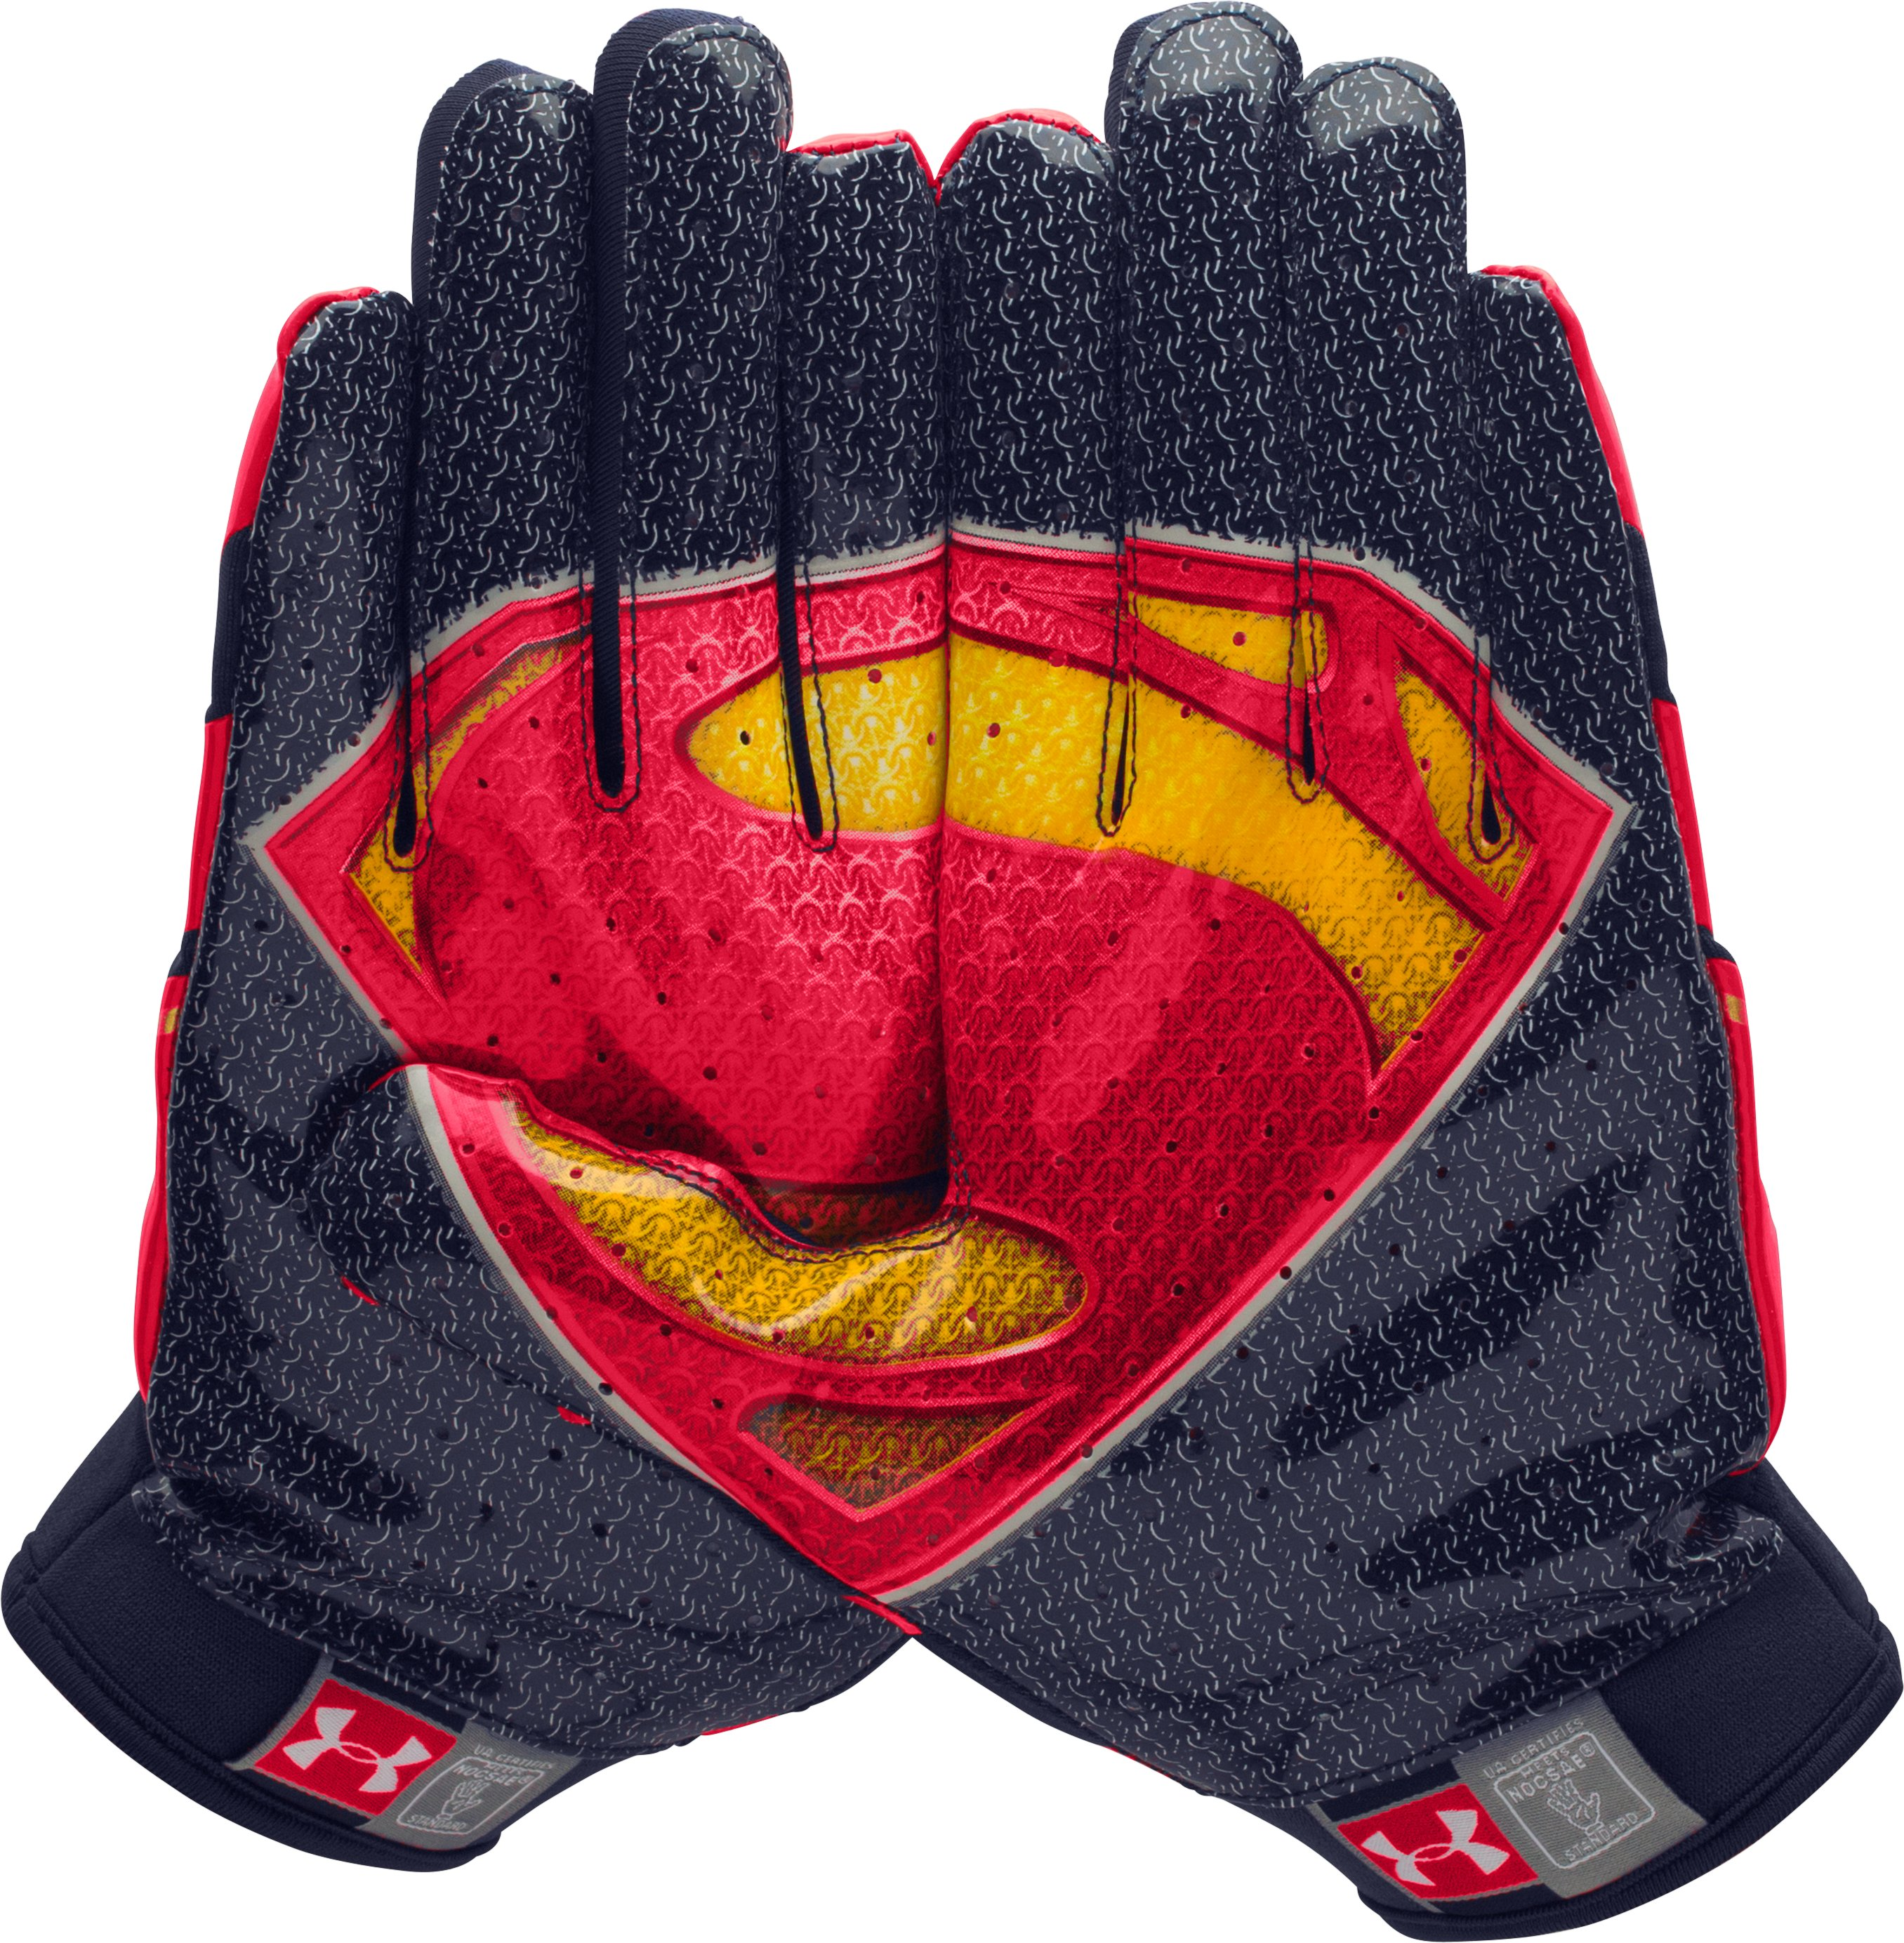 Find great deals on eBay for superman boxing gloves. Shop with confidence.